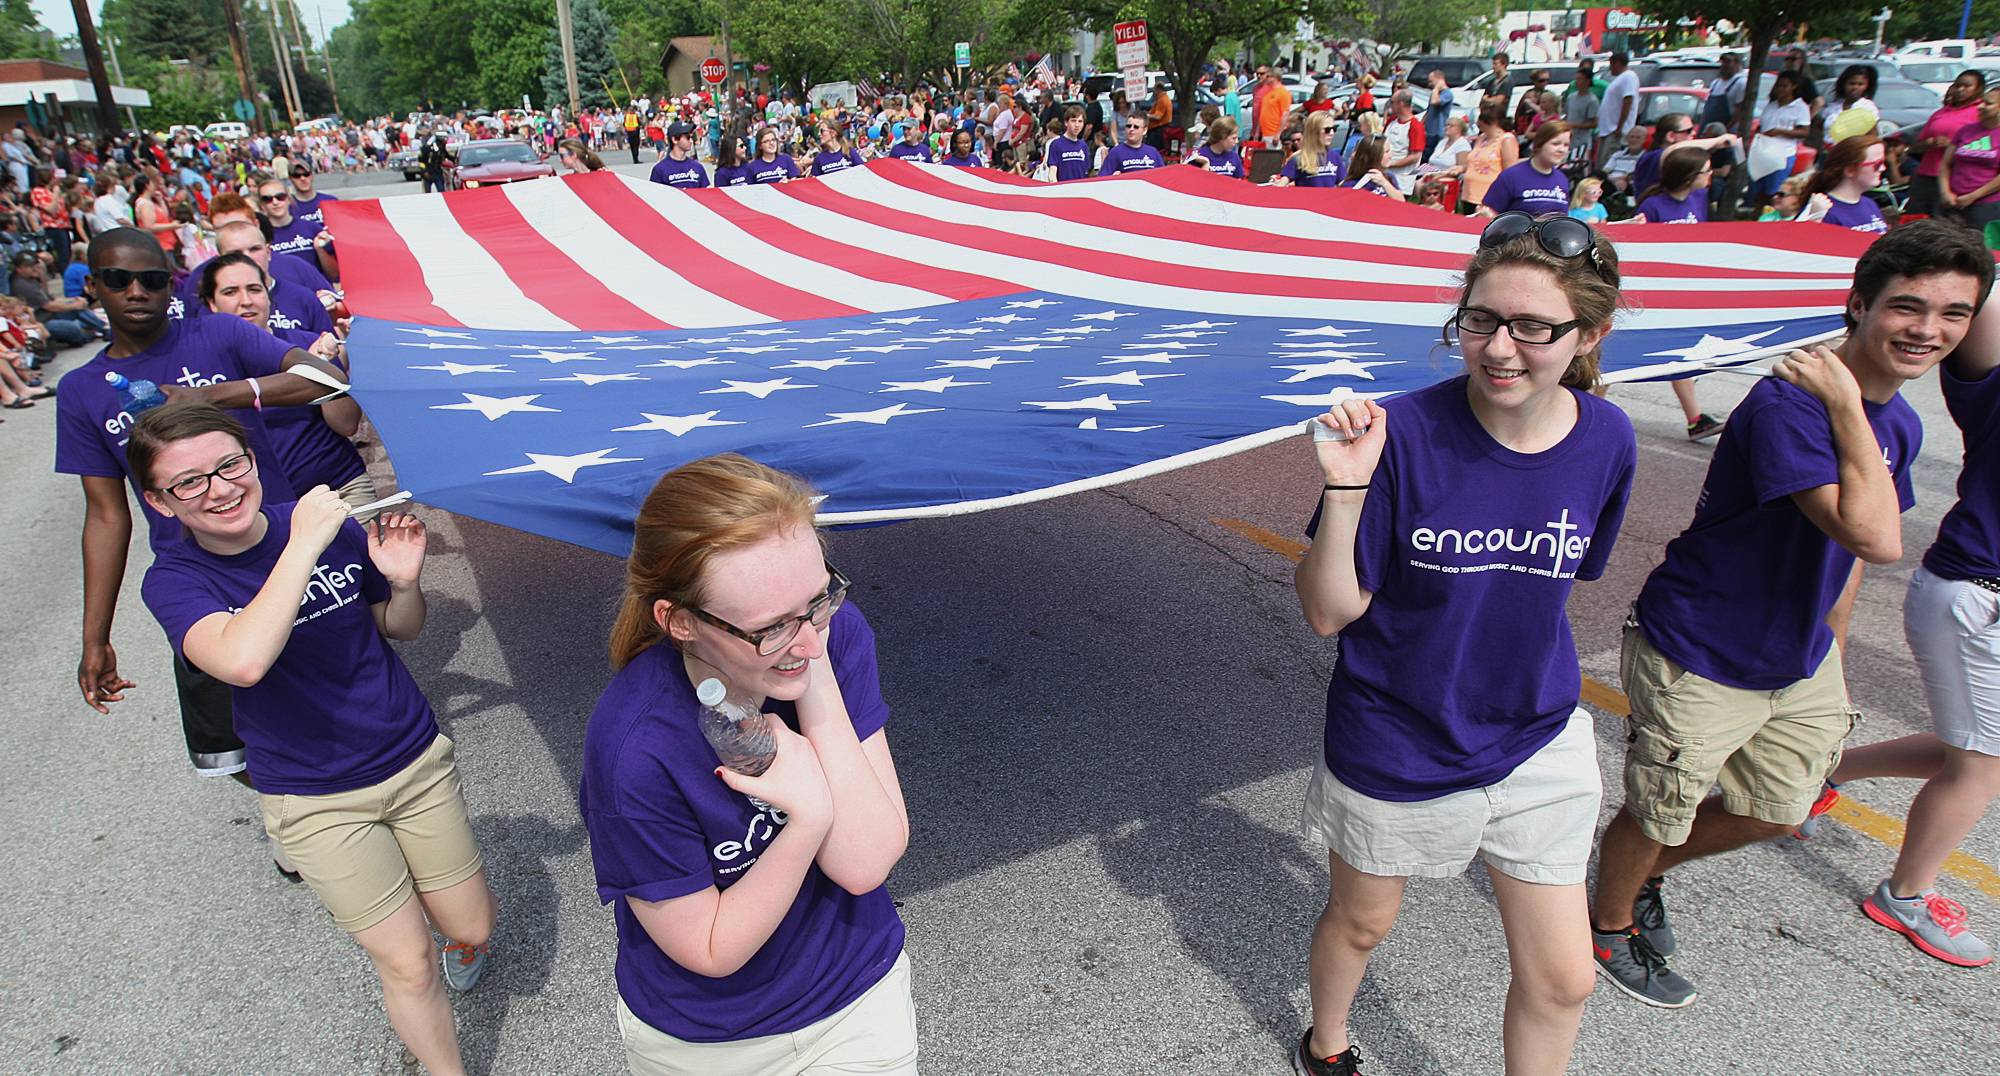 Members of the Christian music group called Encounter walk their large flag through the 147th annual Alton, Ill., Memorial Day Parade Monday, May 26, 2014. The Alton parade is believed to be the longest running consecutive Memorial Day Parade in the nation.